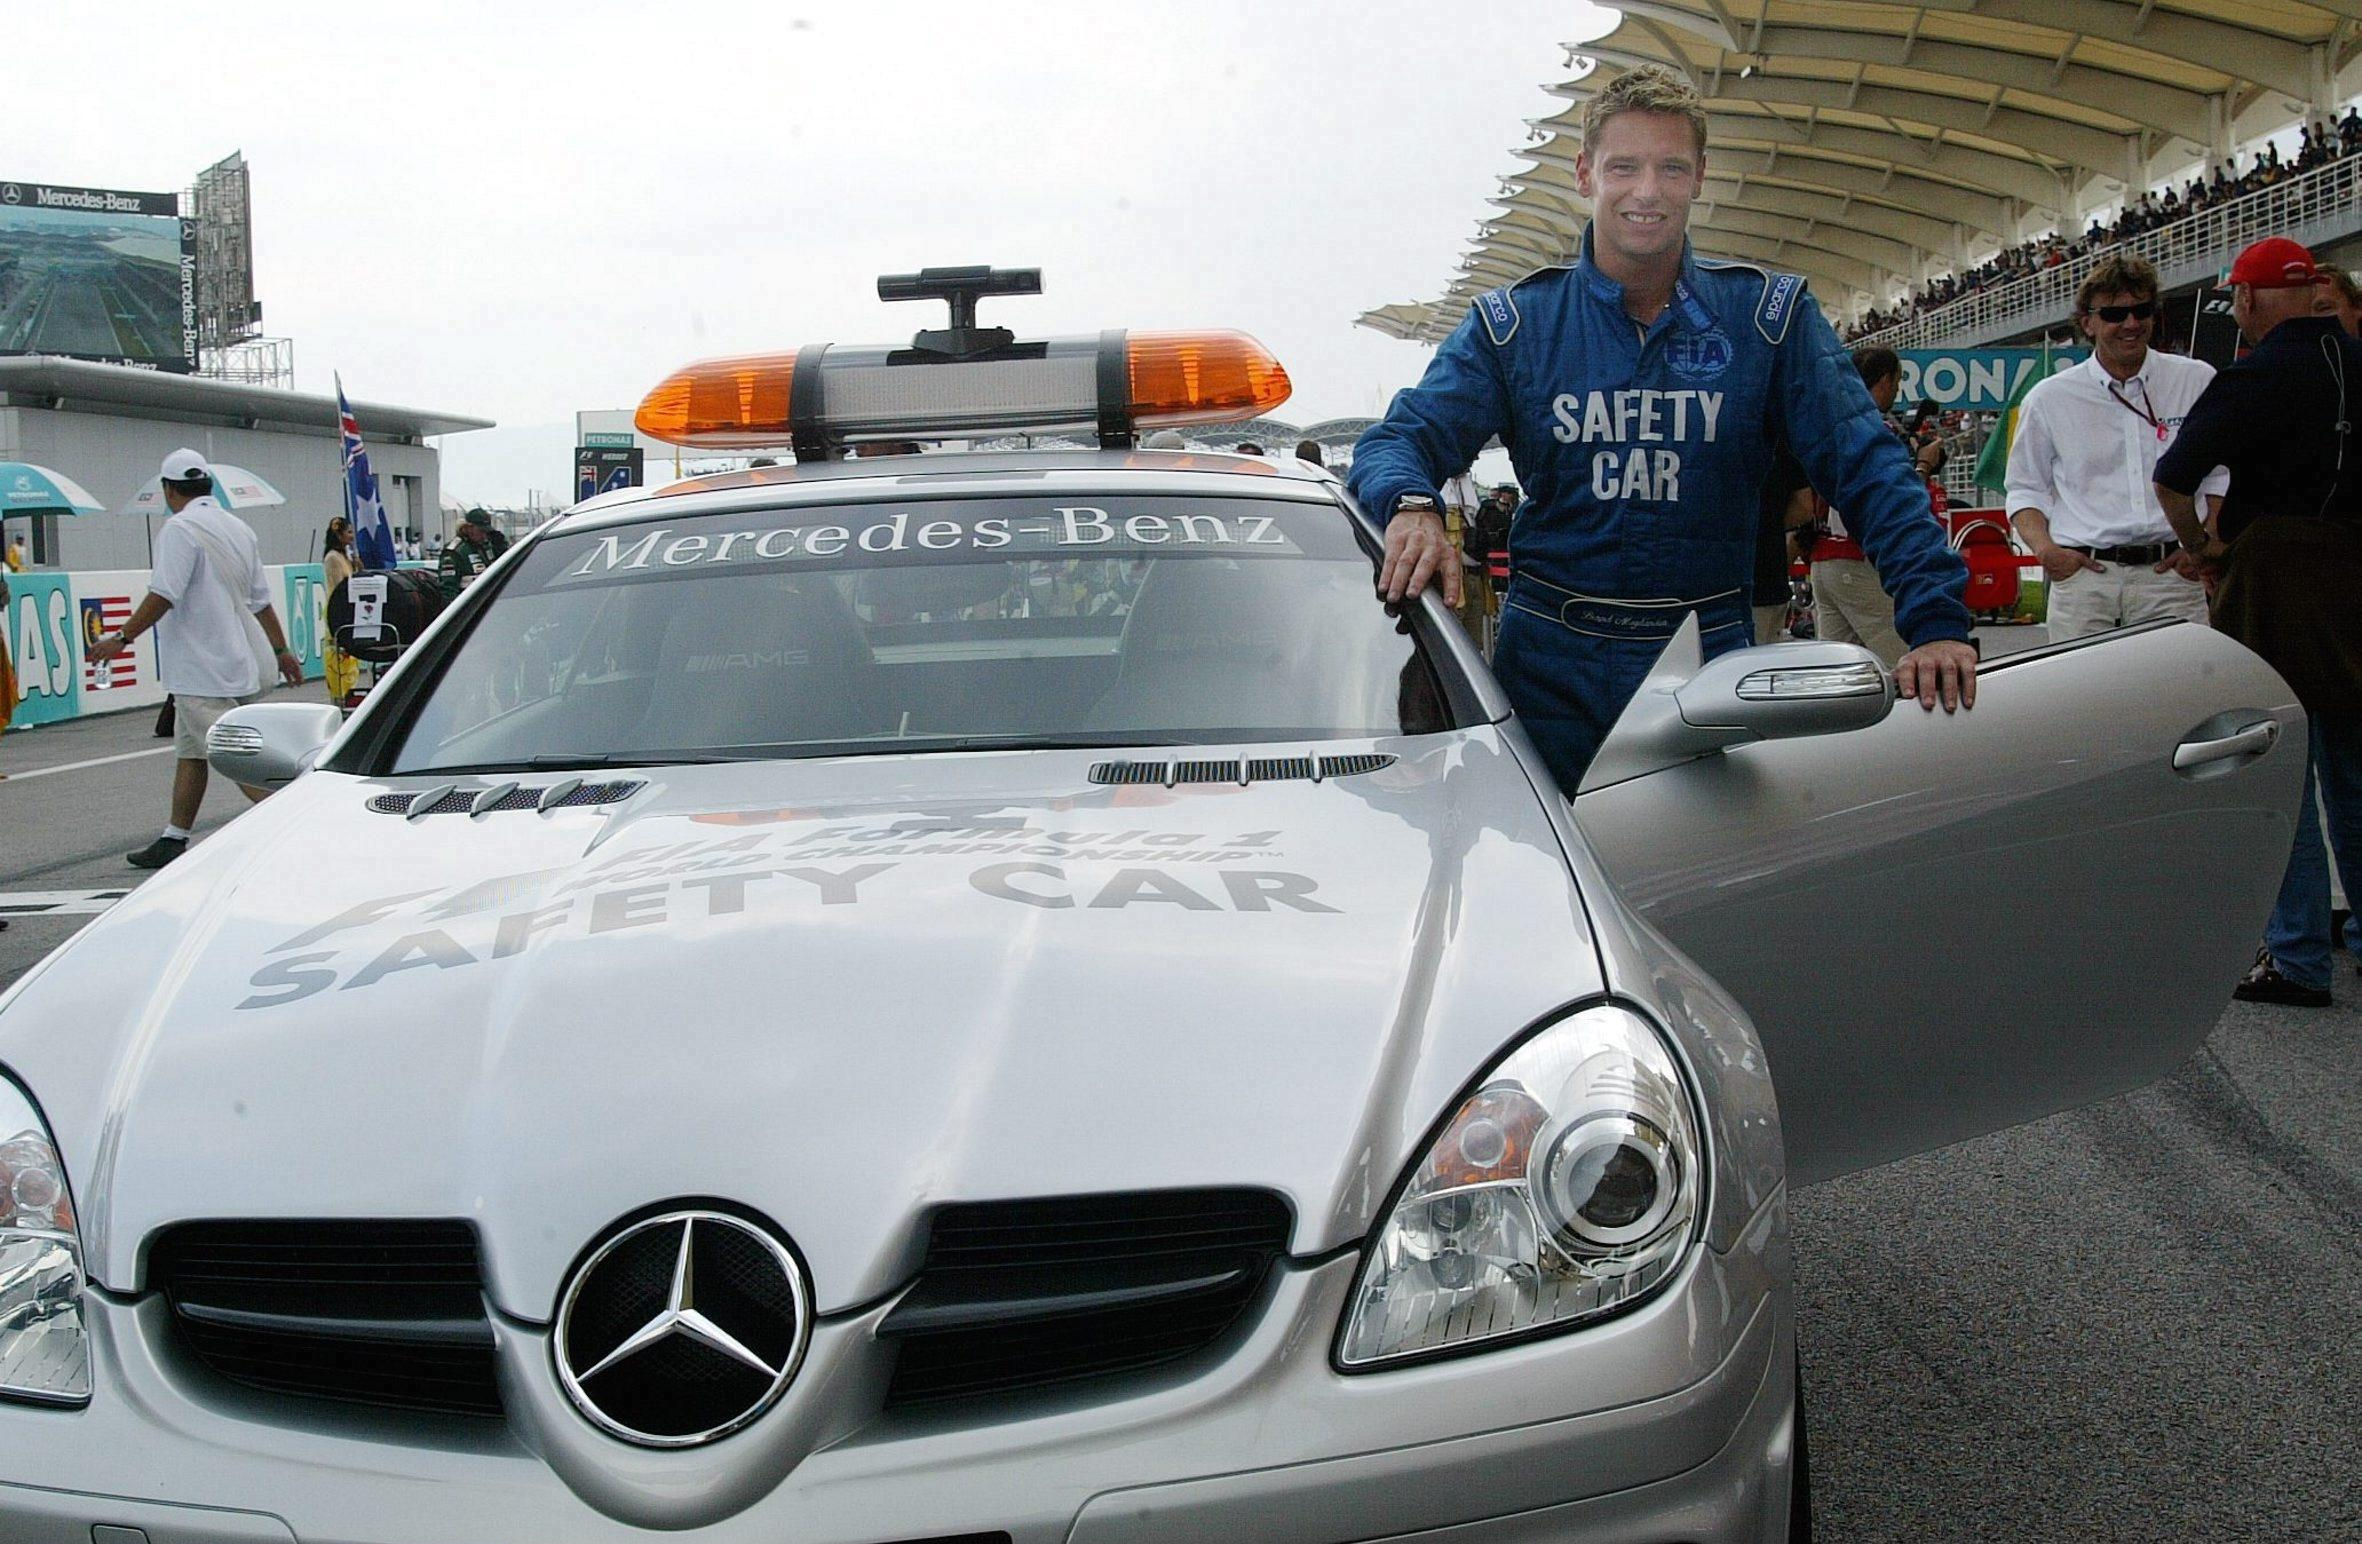 Safety Car driver Bernd Maylander has one of the best records at Singapore Grand Prix